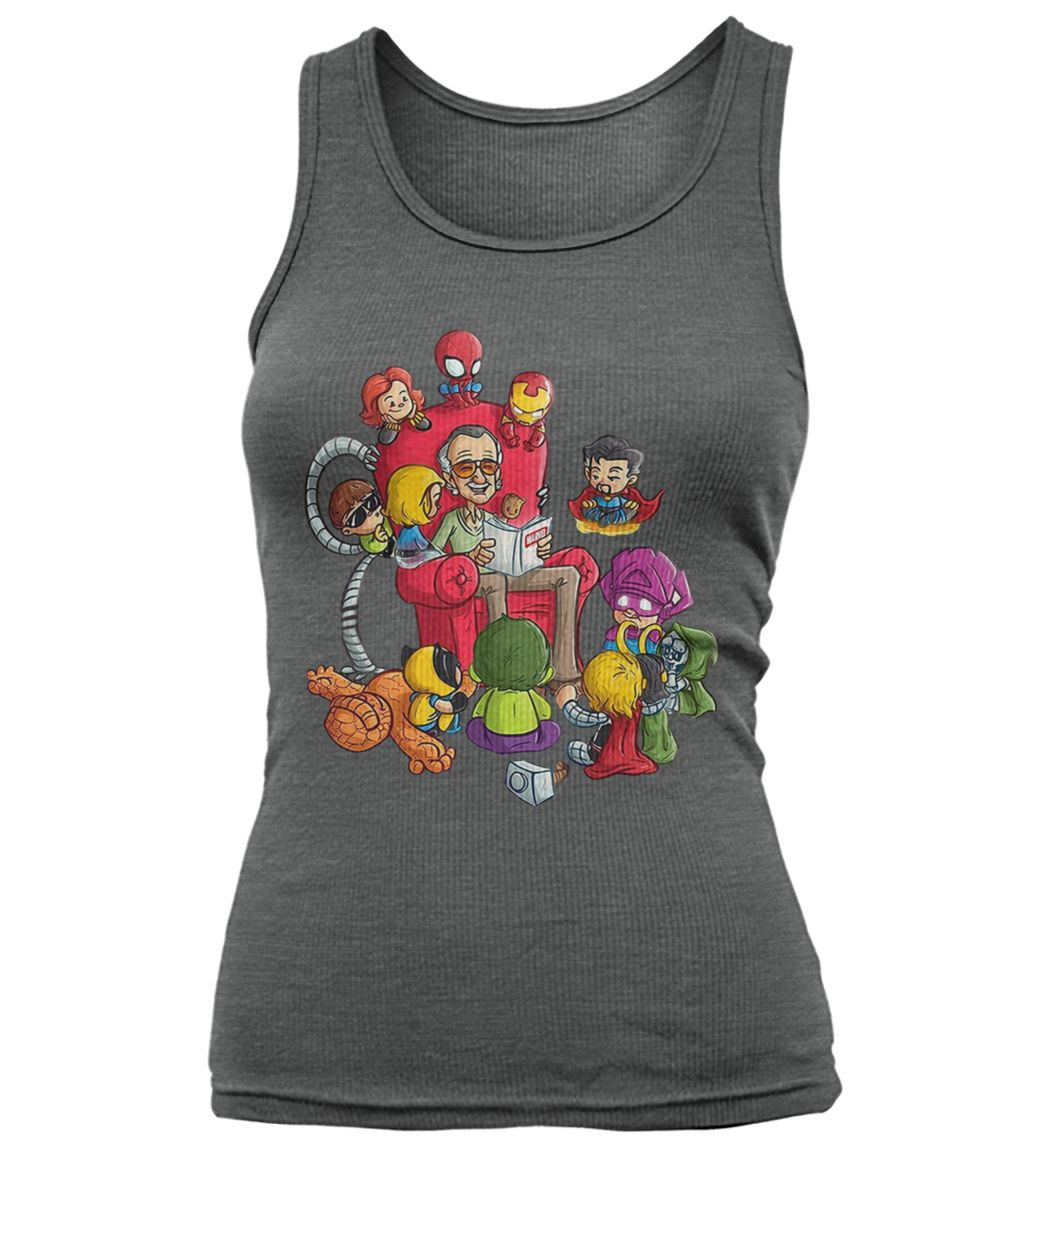 Stan lee reading book comic to avengers hero women's tank top